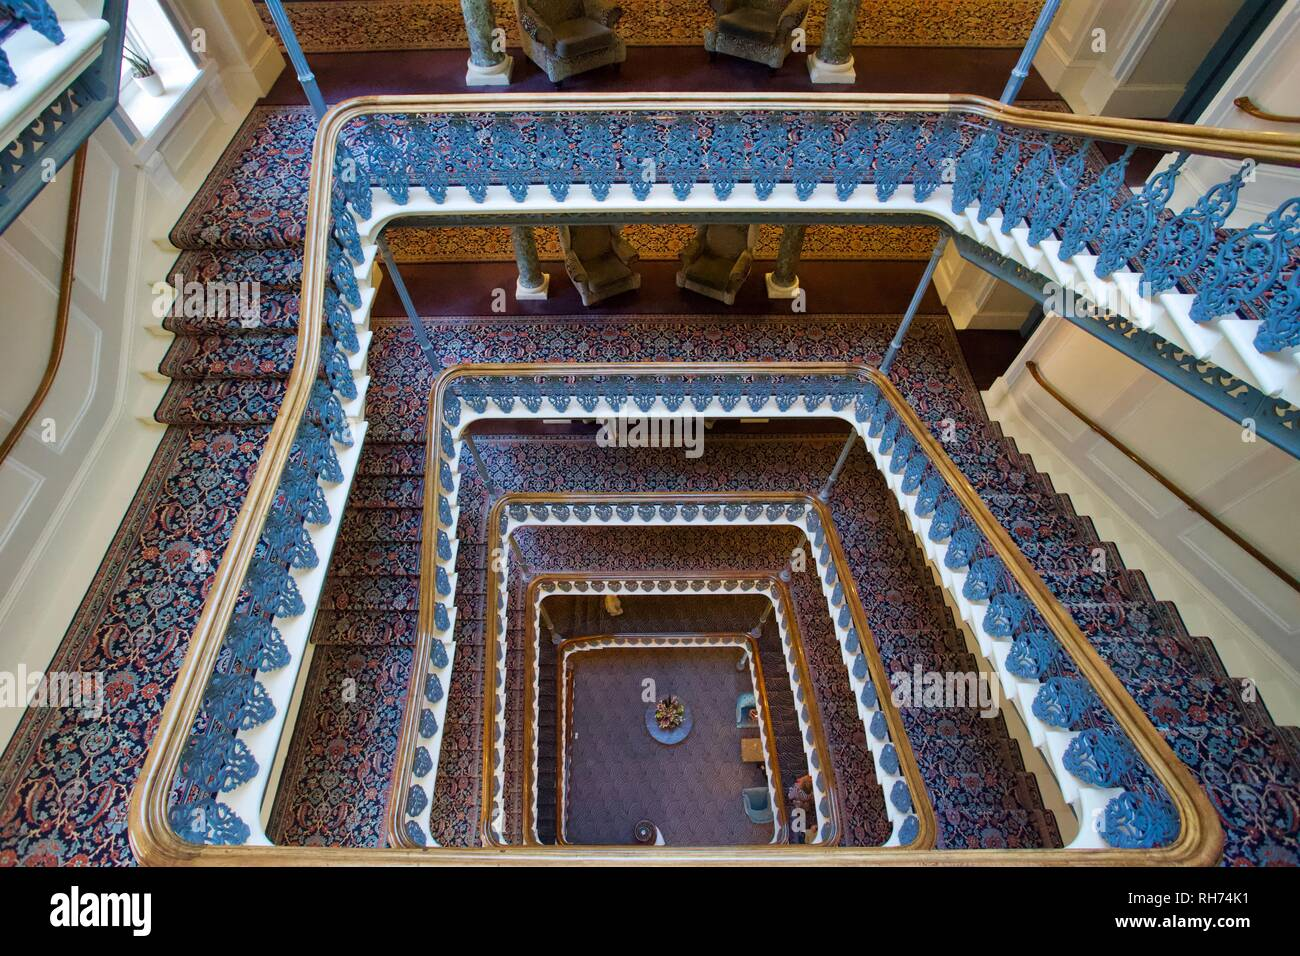 Staircase The Grand Brighton Hotel East Sussex England Stock Photo Alamy